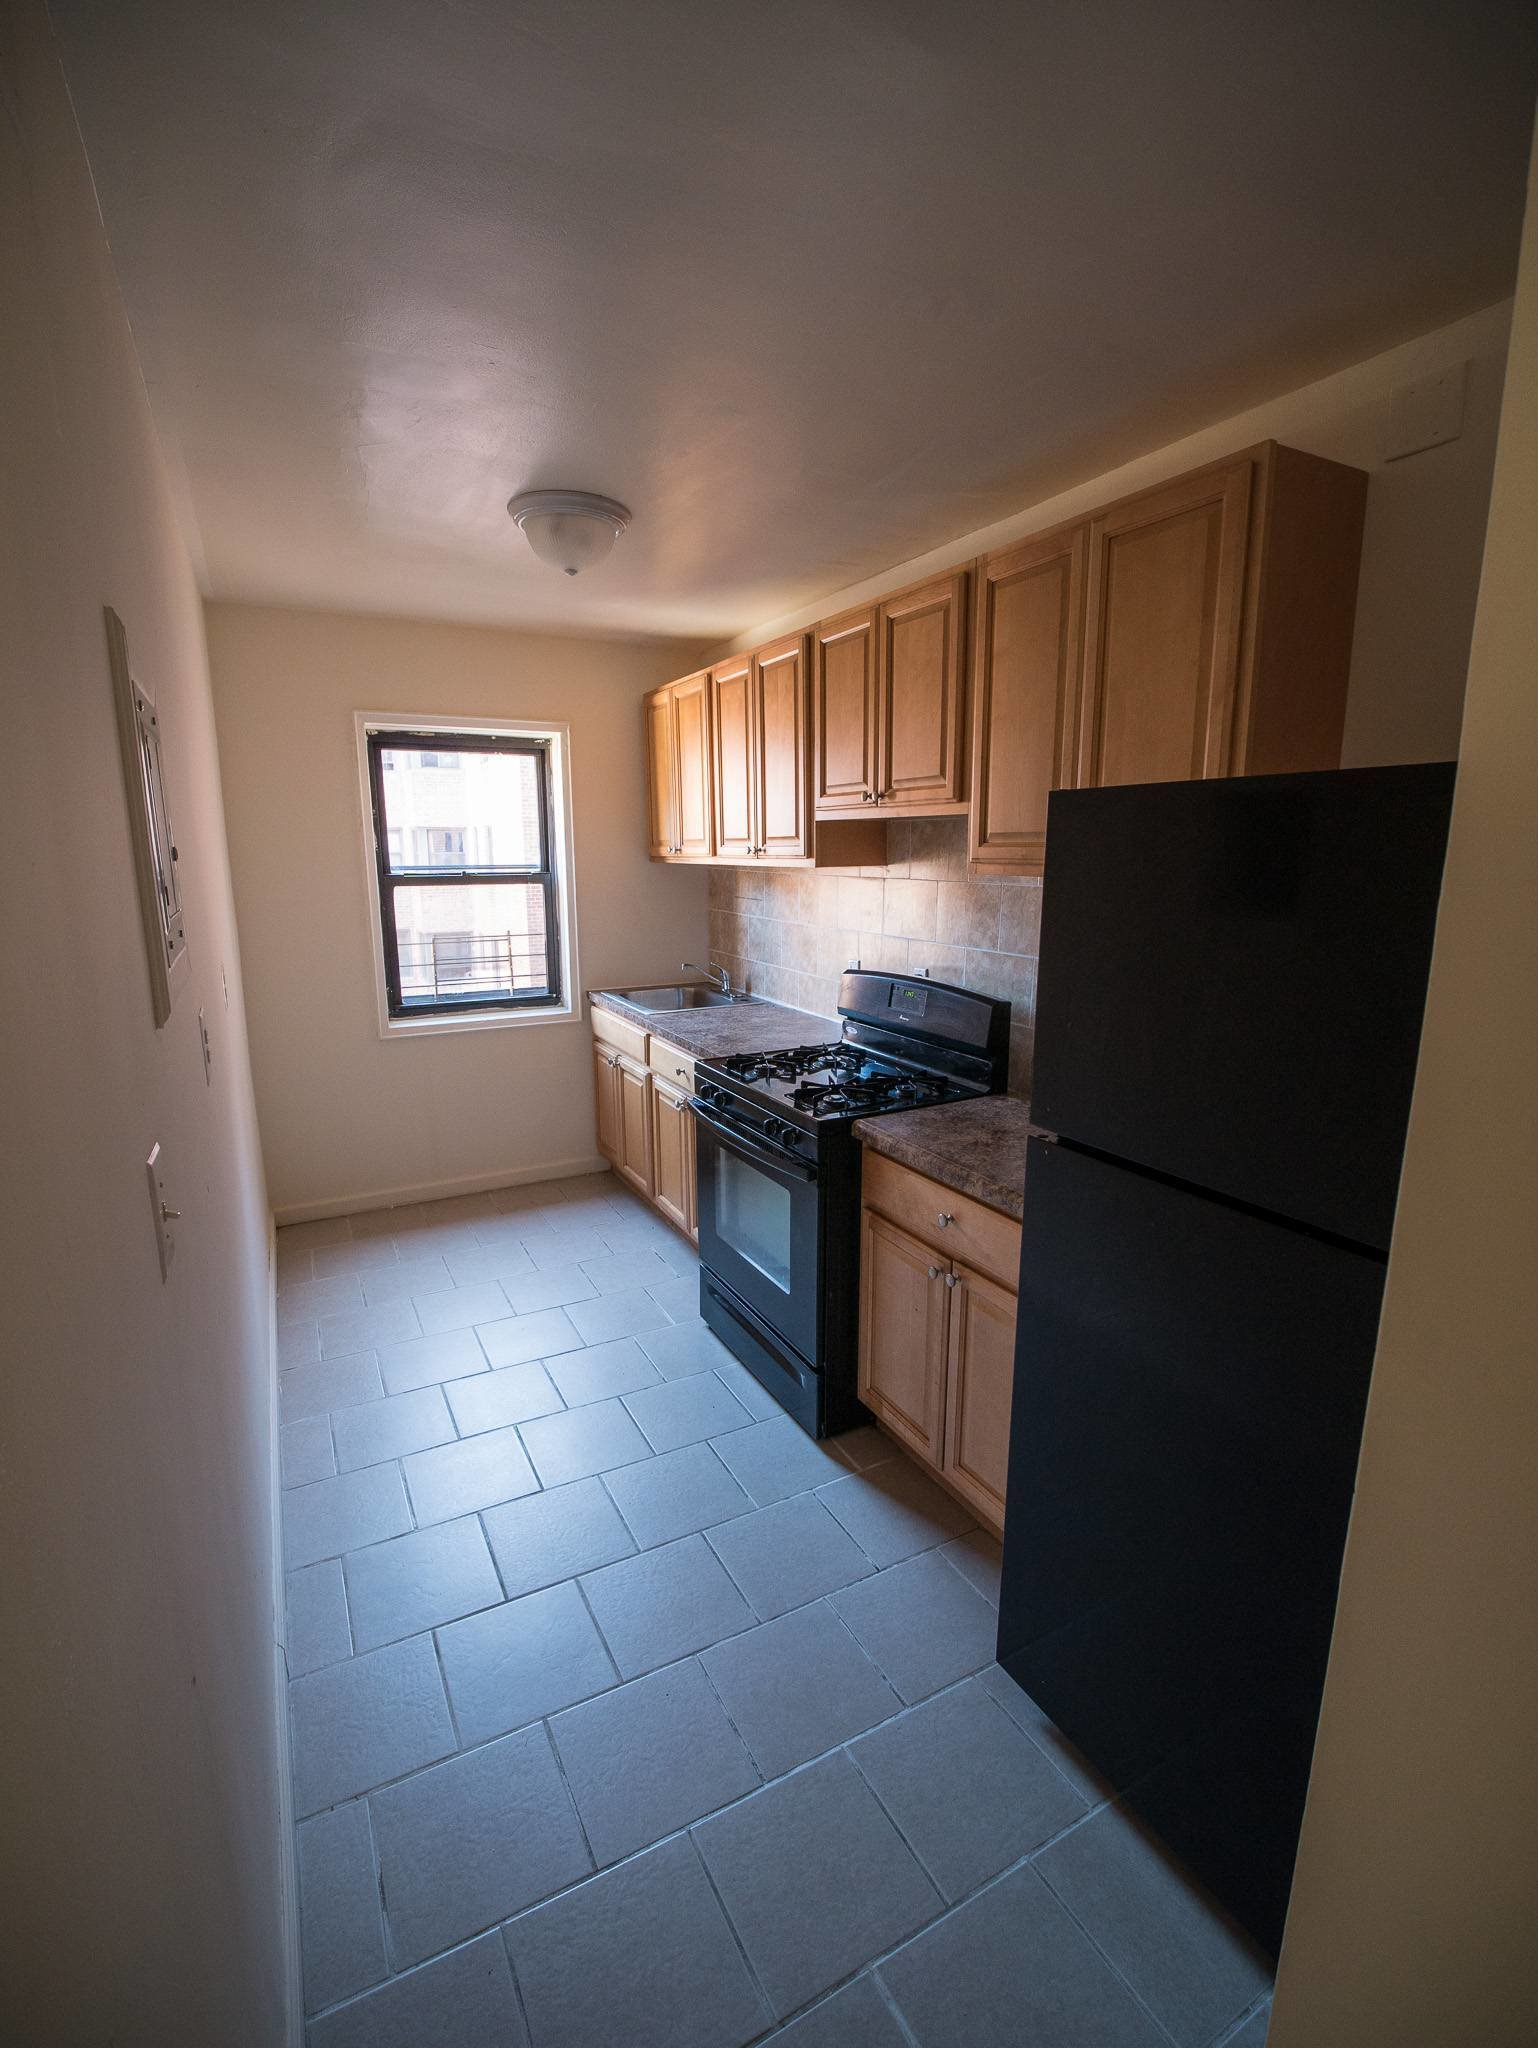 Best Rent Apartment Bridgeport Fairfield Ct One Bedroom With Pictures